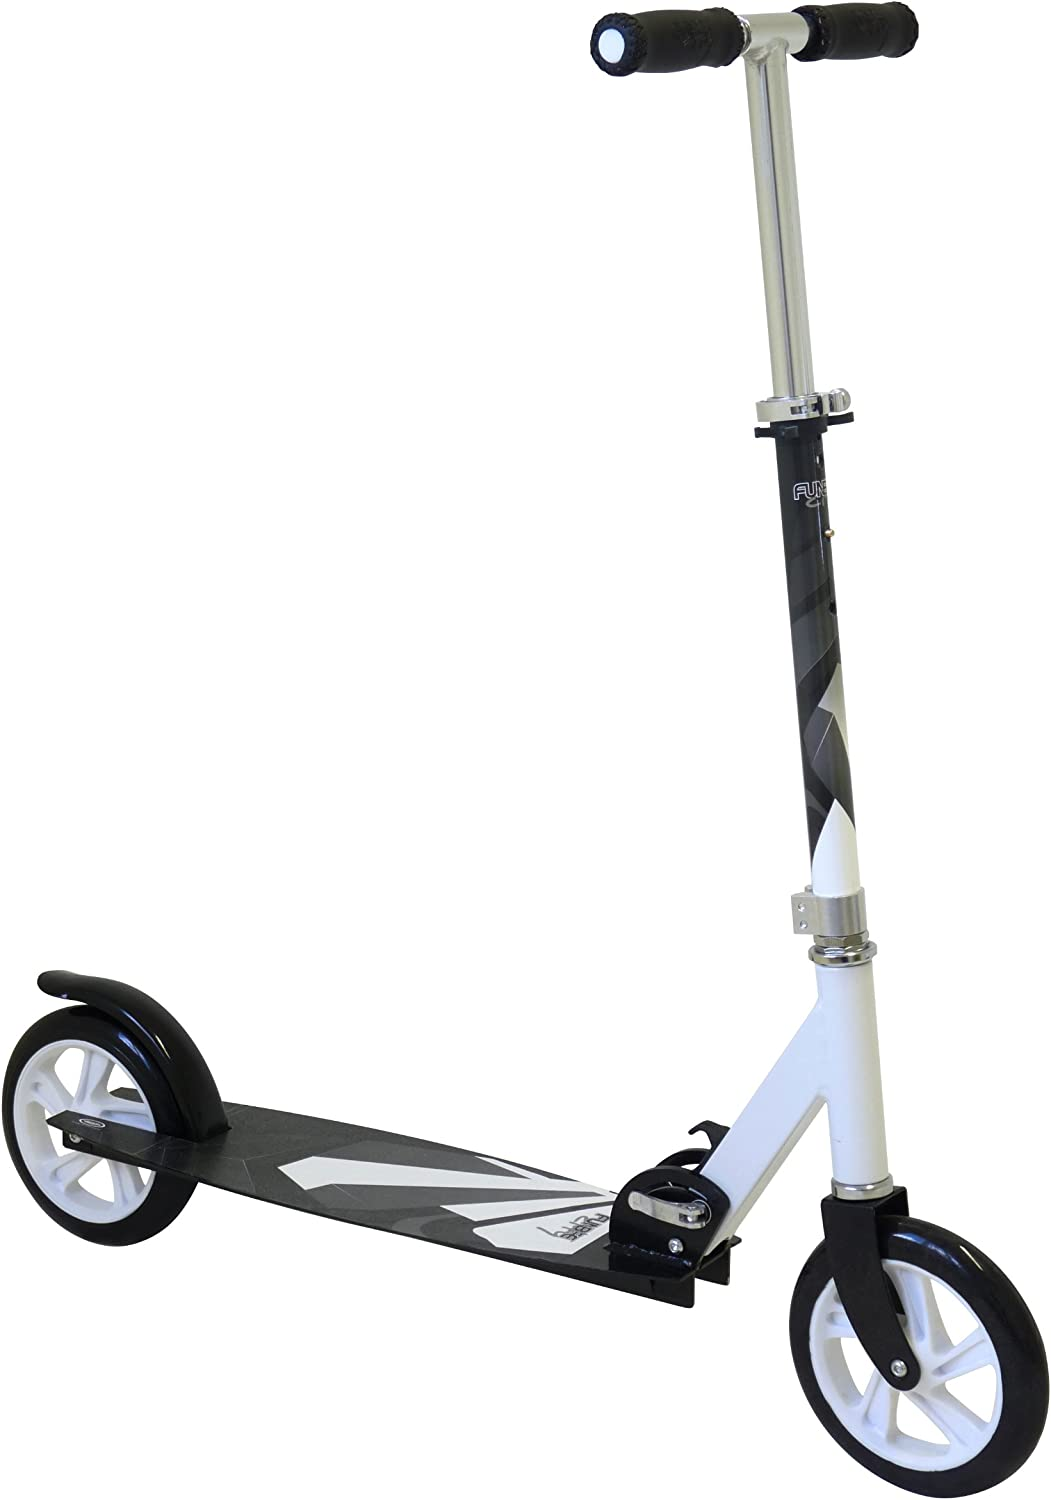 Amazon.com: Funbee Adult Scooter: Toys & Games